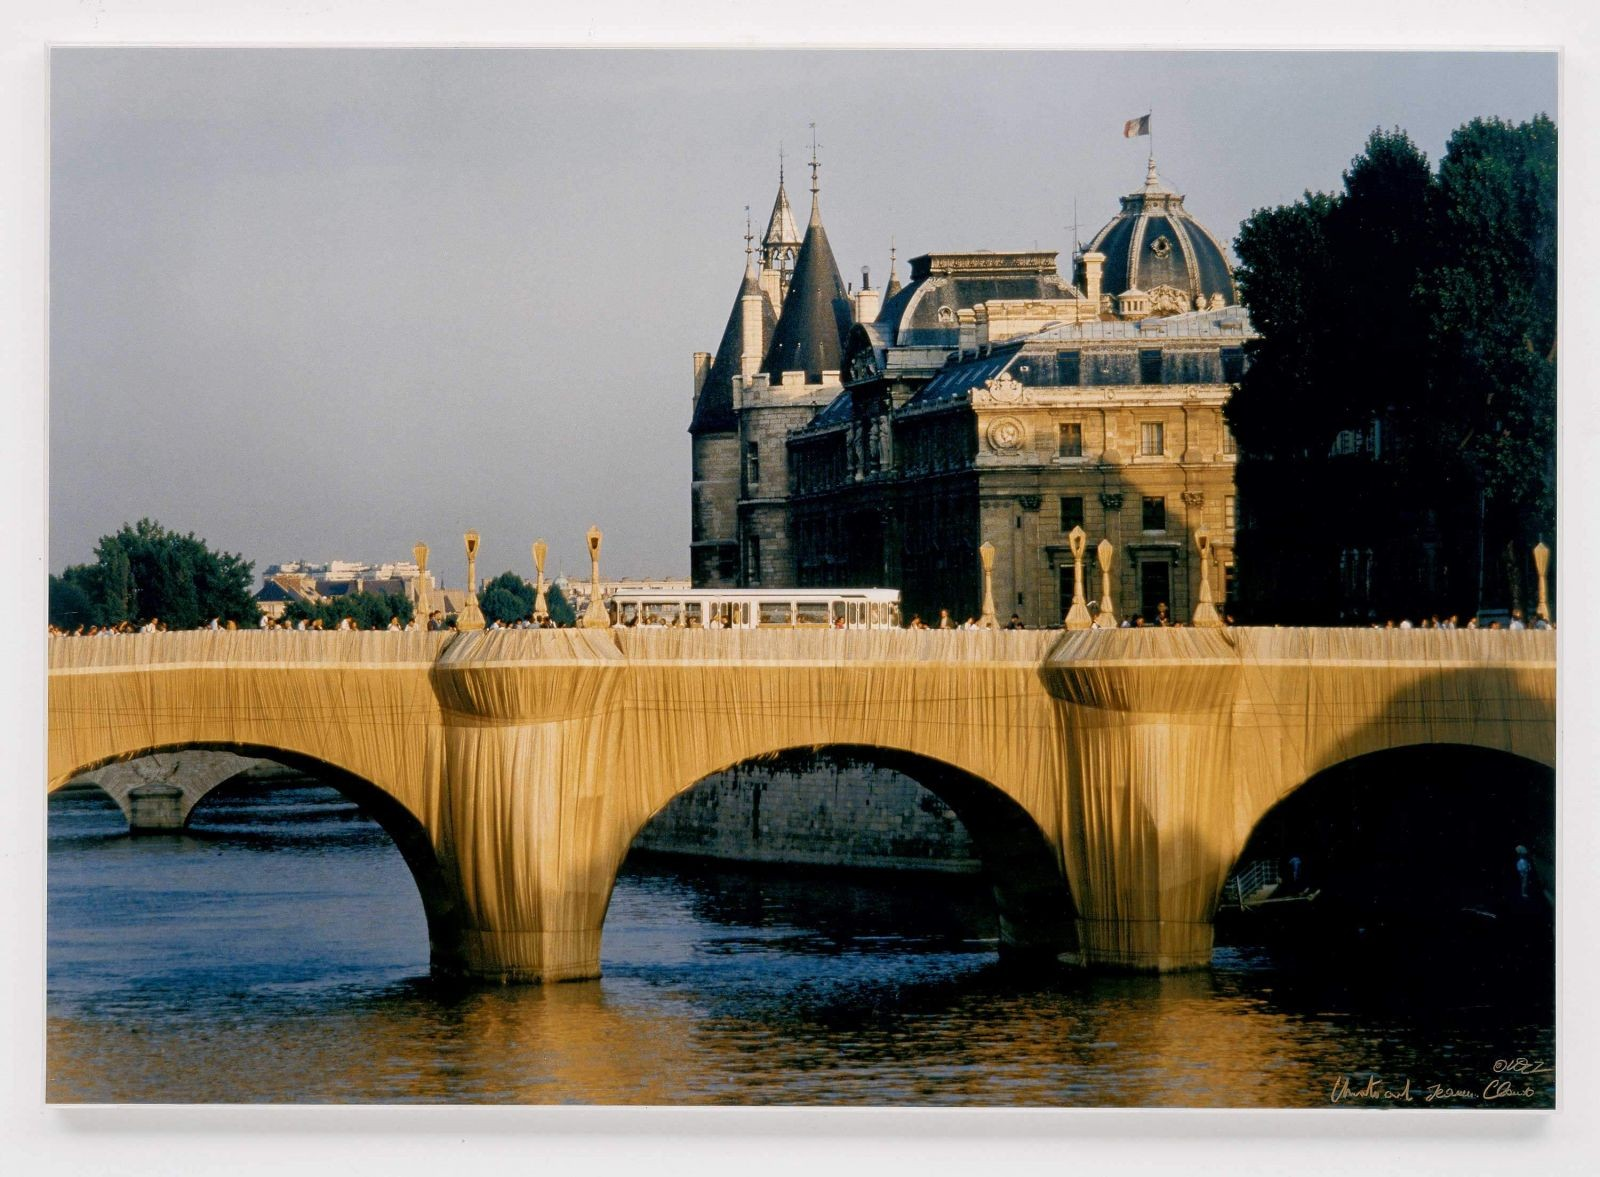 The Pont Neuf Wrapped, Paris 1975-85 1985 Photographie de Wolfgang Volz 70 x 100 cm Collection Würth, Inv. 2801 Crédit : Wolfgang Volz – © Christo